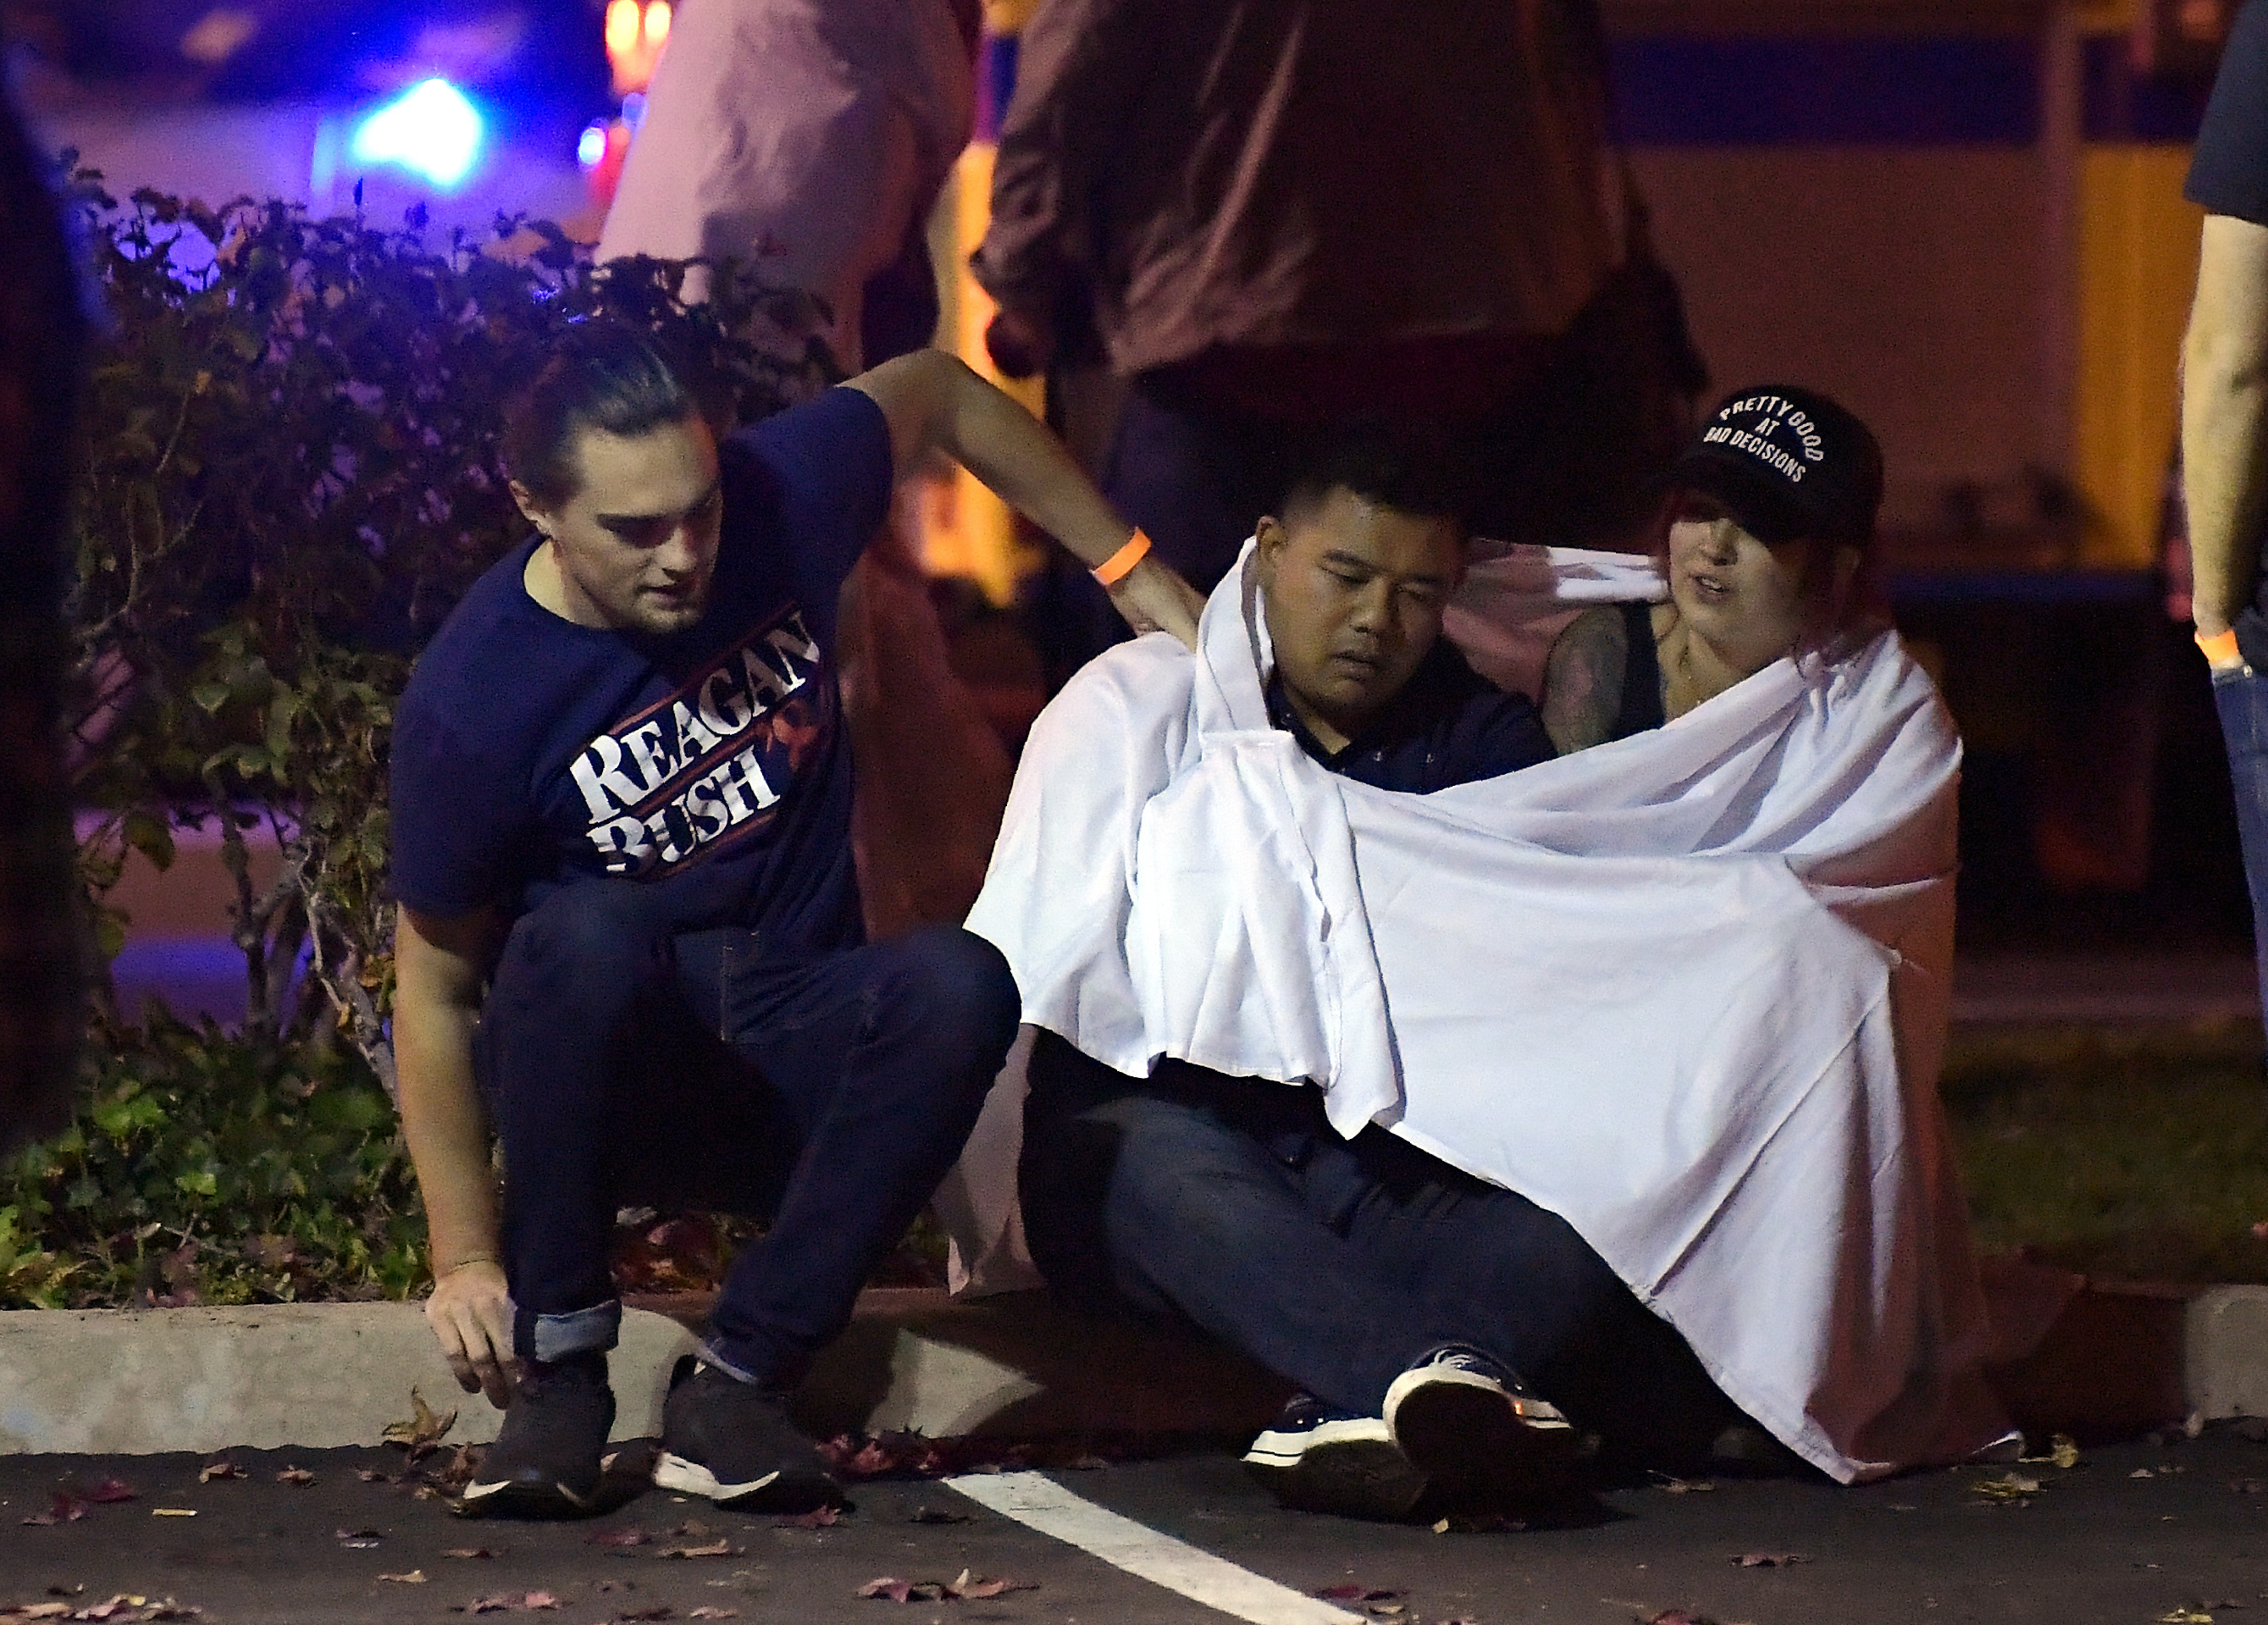 """People comfort each other as they sit near the scene Thursday, Nov. 8, 2018, in Thousand Oaks, Calif. where a gunman opened fire Wednesday inside a country dance bar crowded with hundreds of people on """"college night,"""" wounding 11 people including a deputy who rushed to the scene. Ventura County sheriff´s spokesman says gunman is dead inside the bar"""